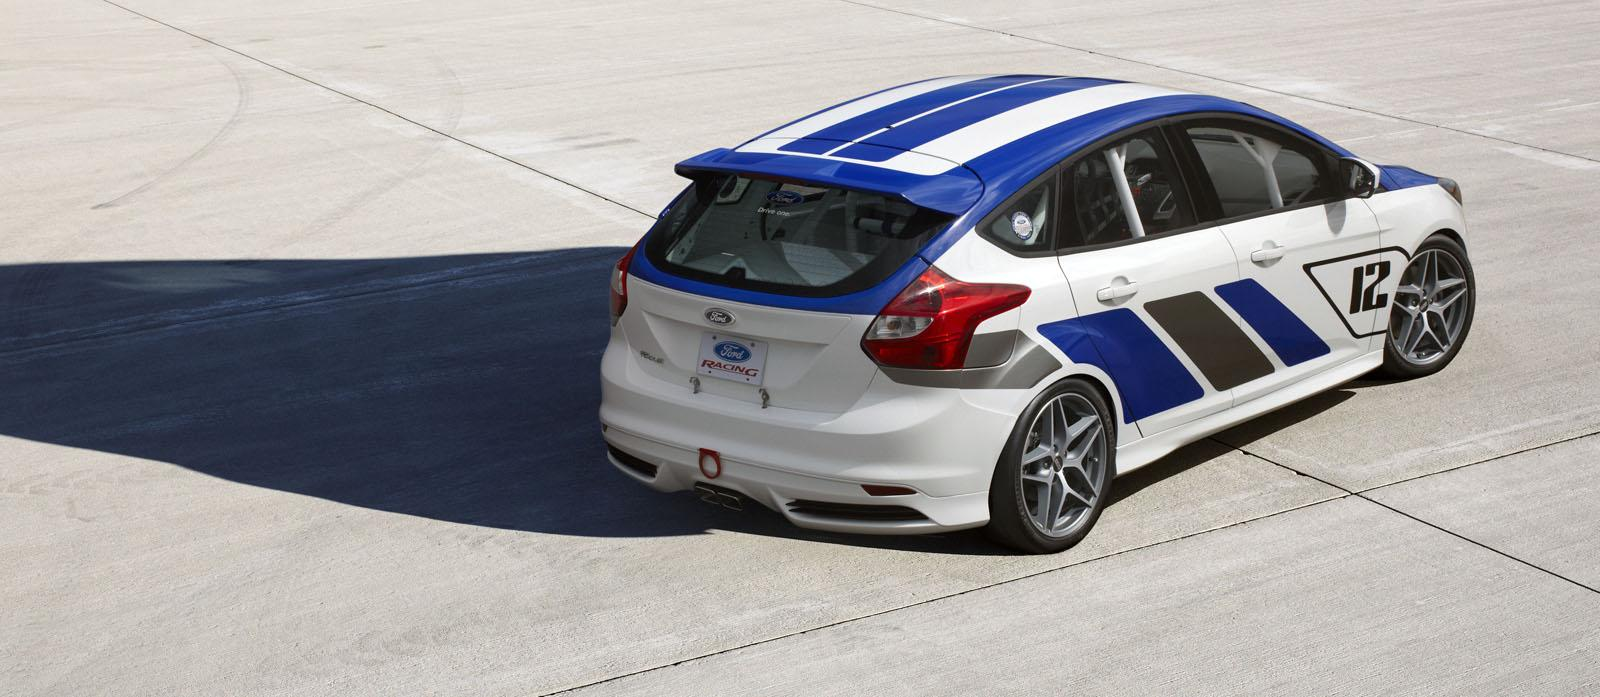 2012 Ford Focus St R Race Car Picture 62196